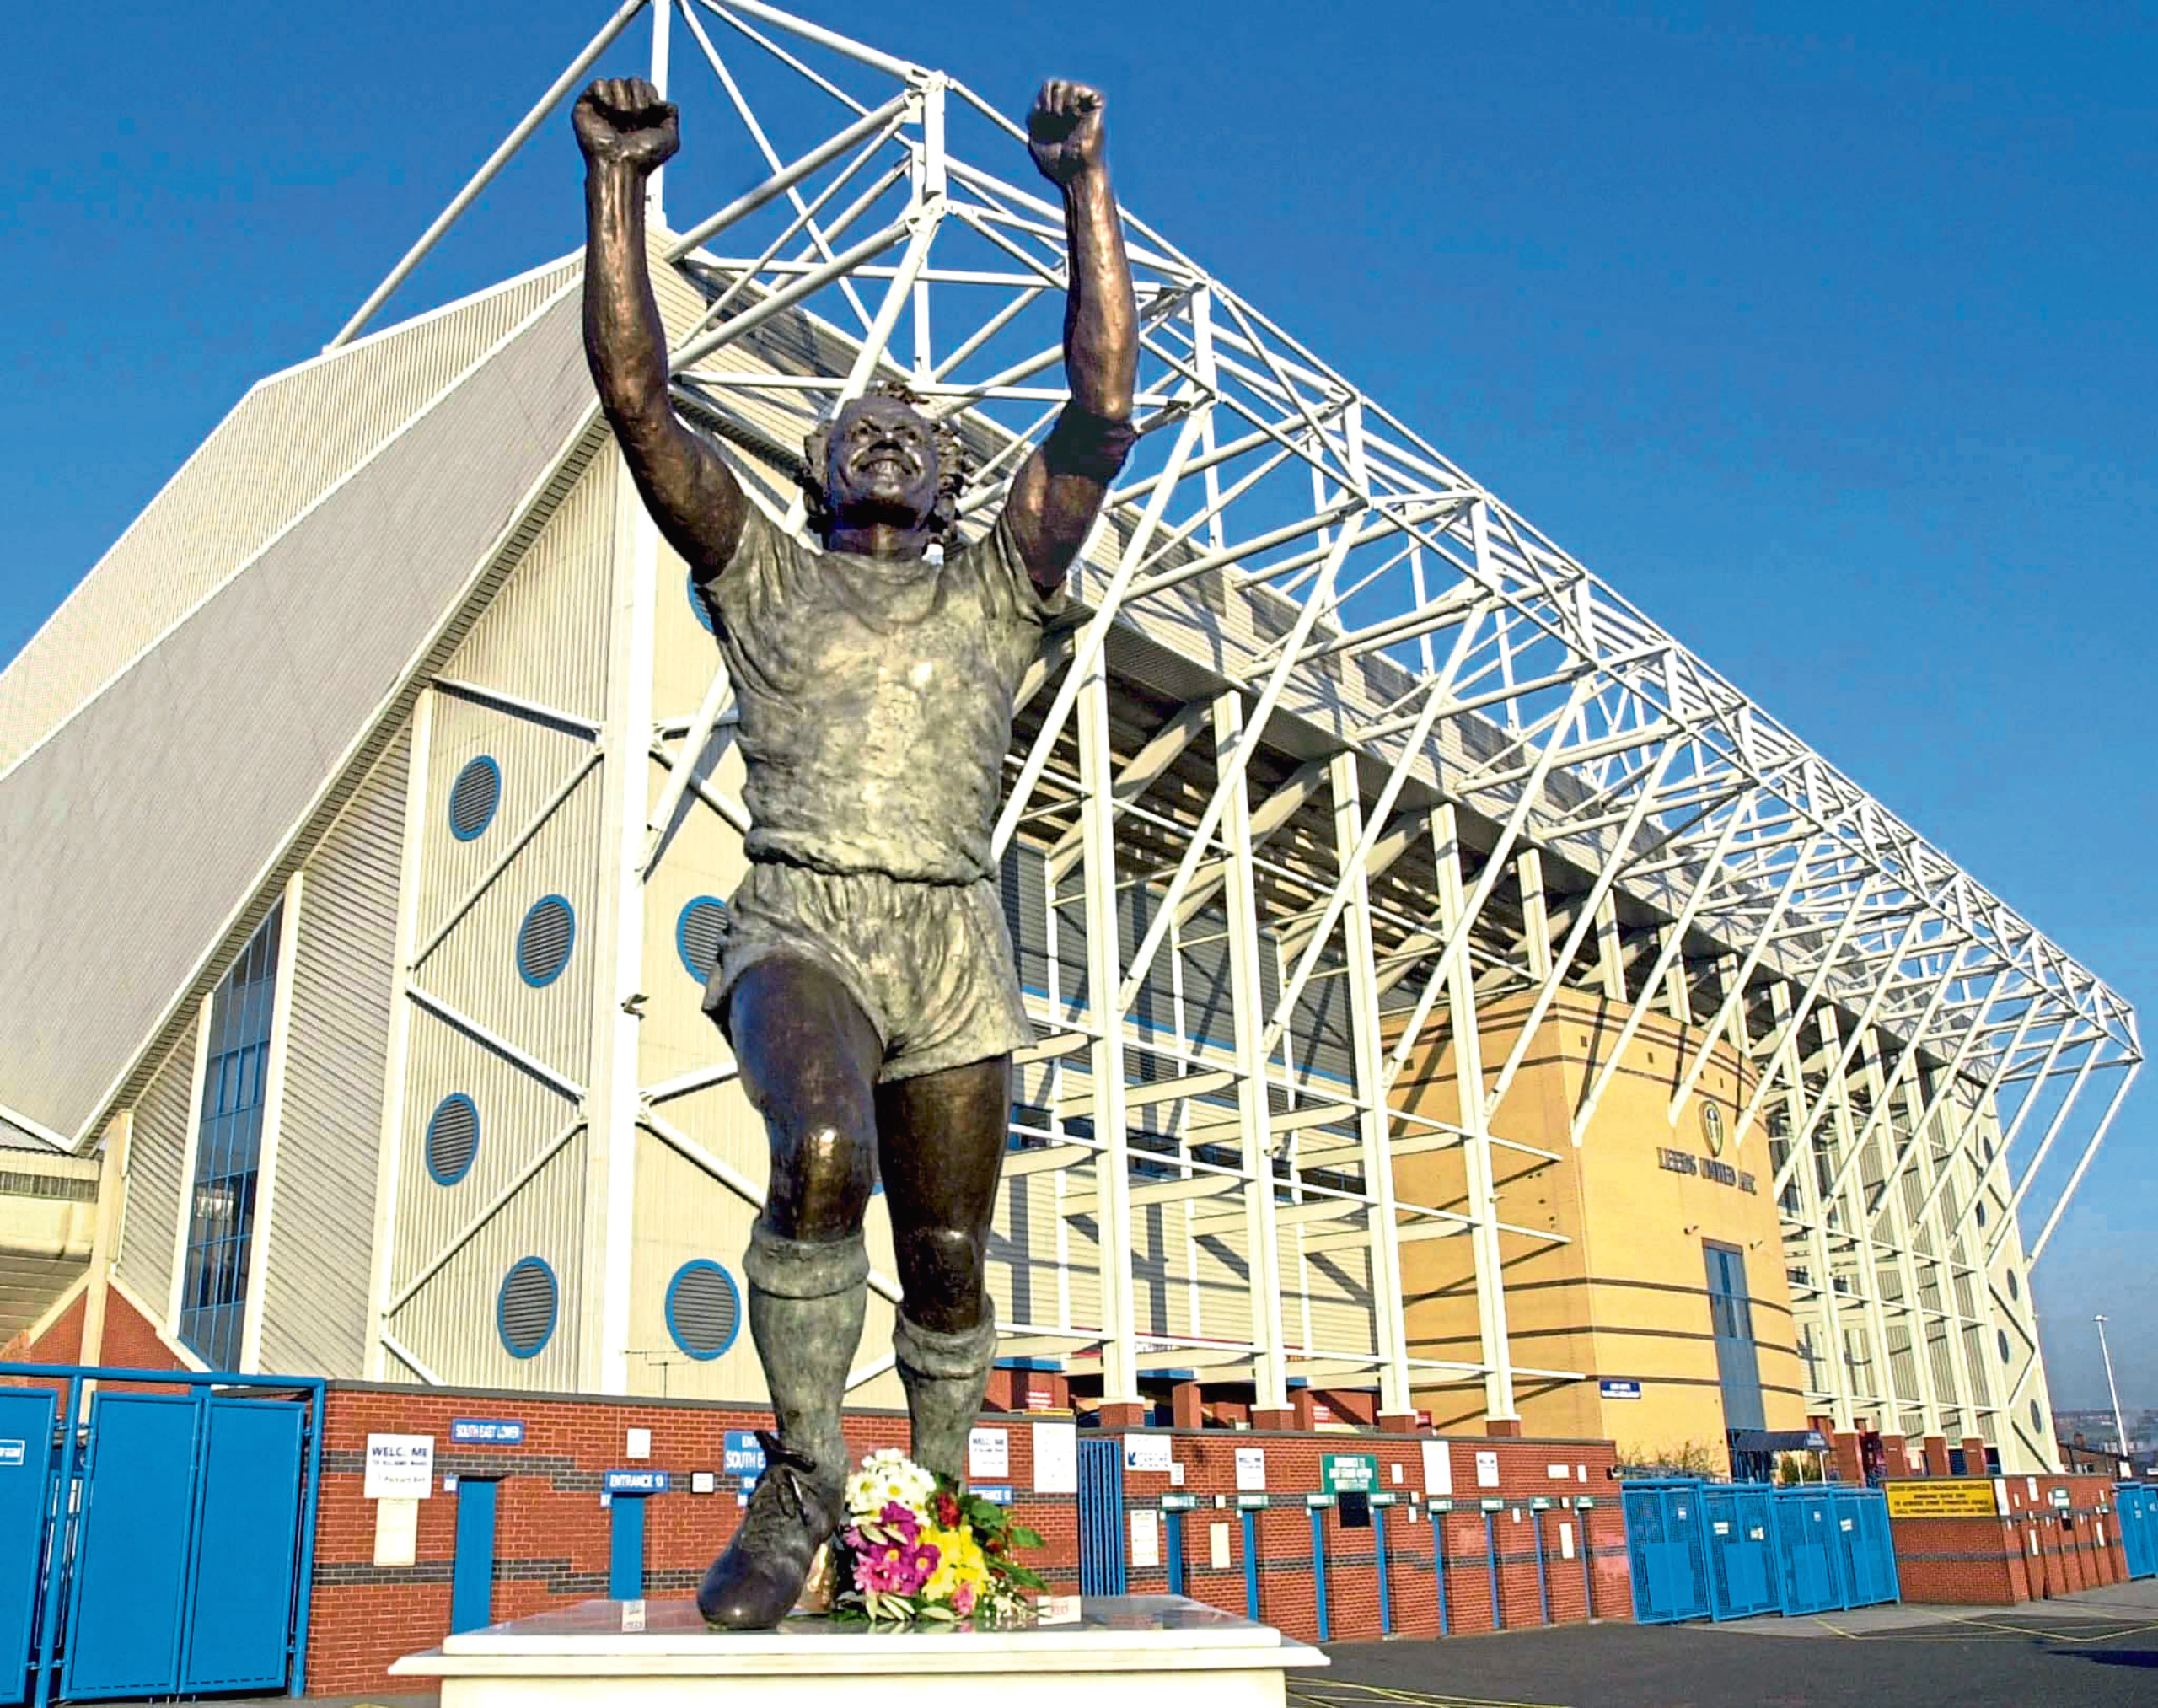 A floral tribute placed at the feet of the statueo of Leeds United hero Billy Bremner at Elland Road, the home of Leeds United Football Club today, Thursday 6th April 2000.